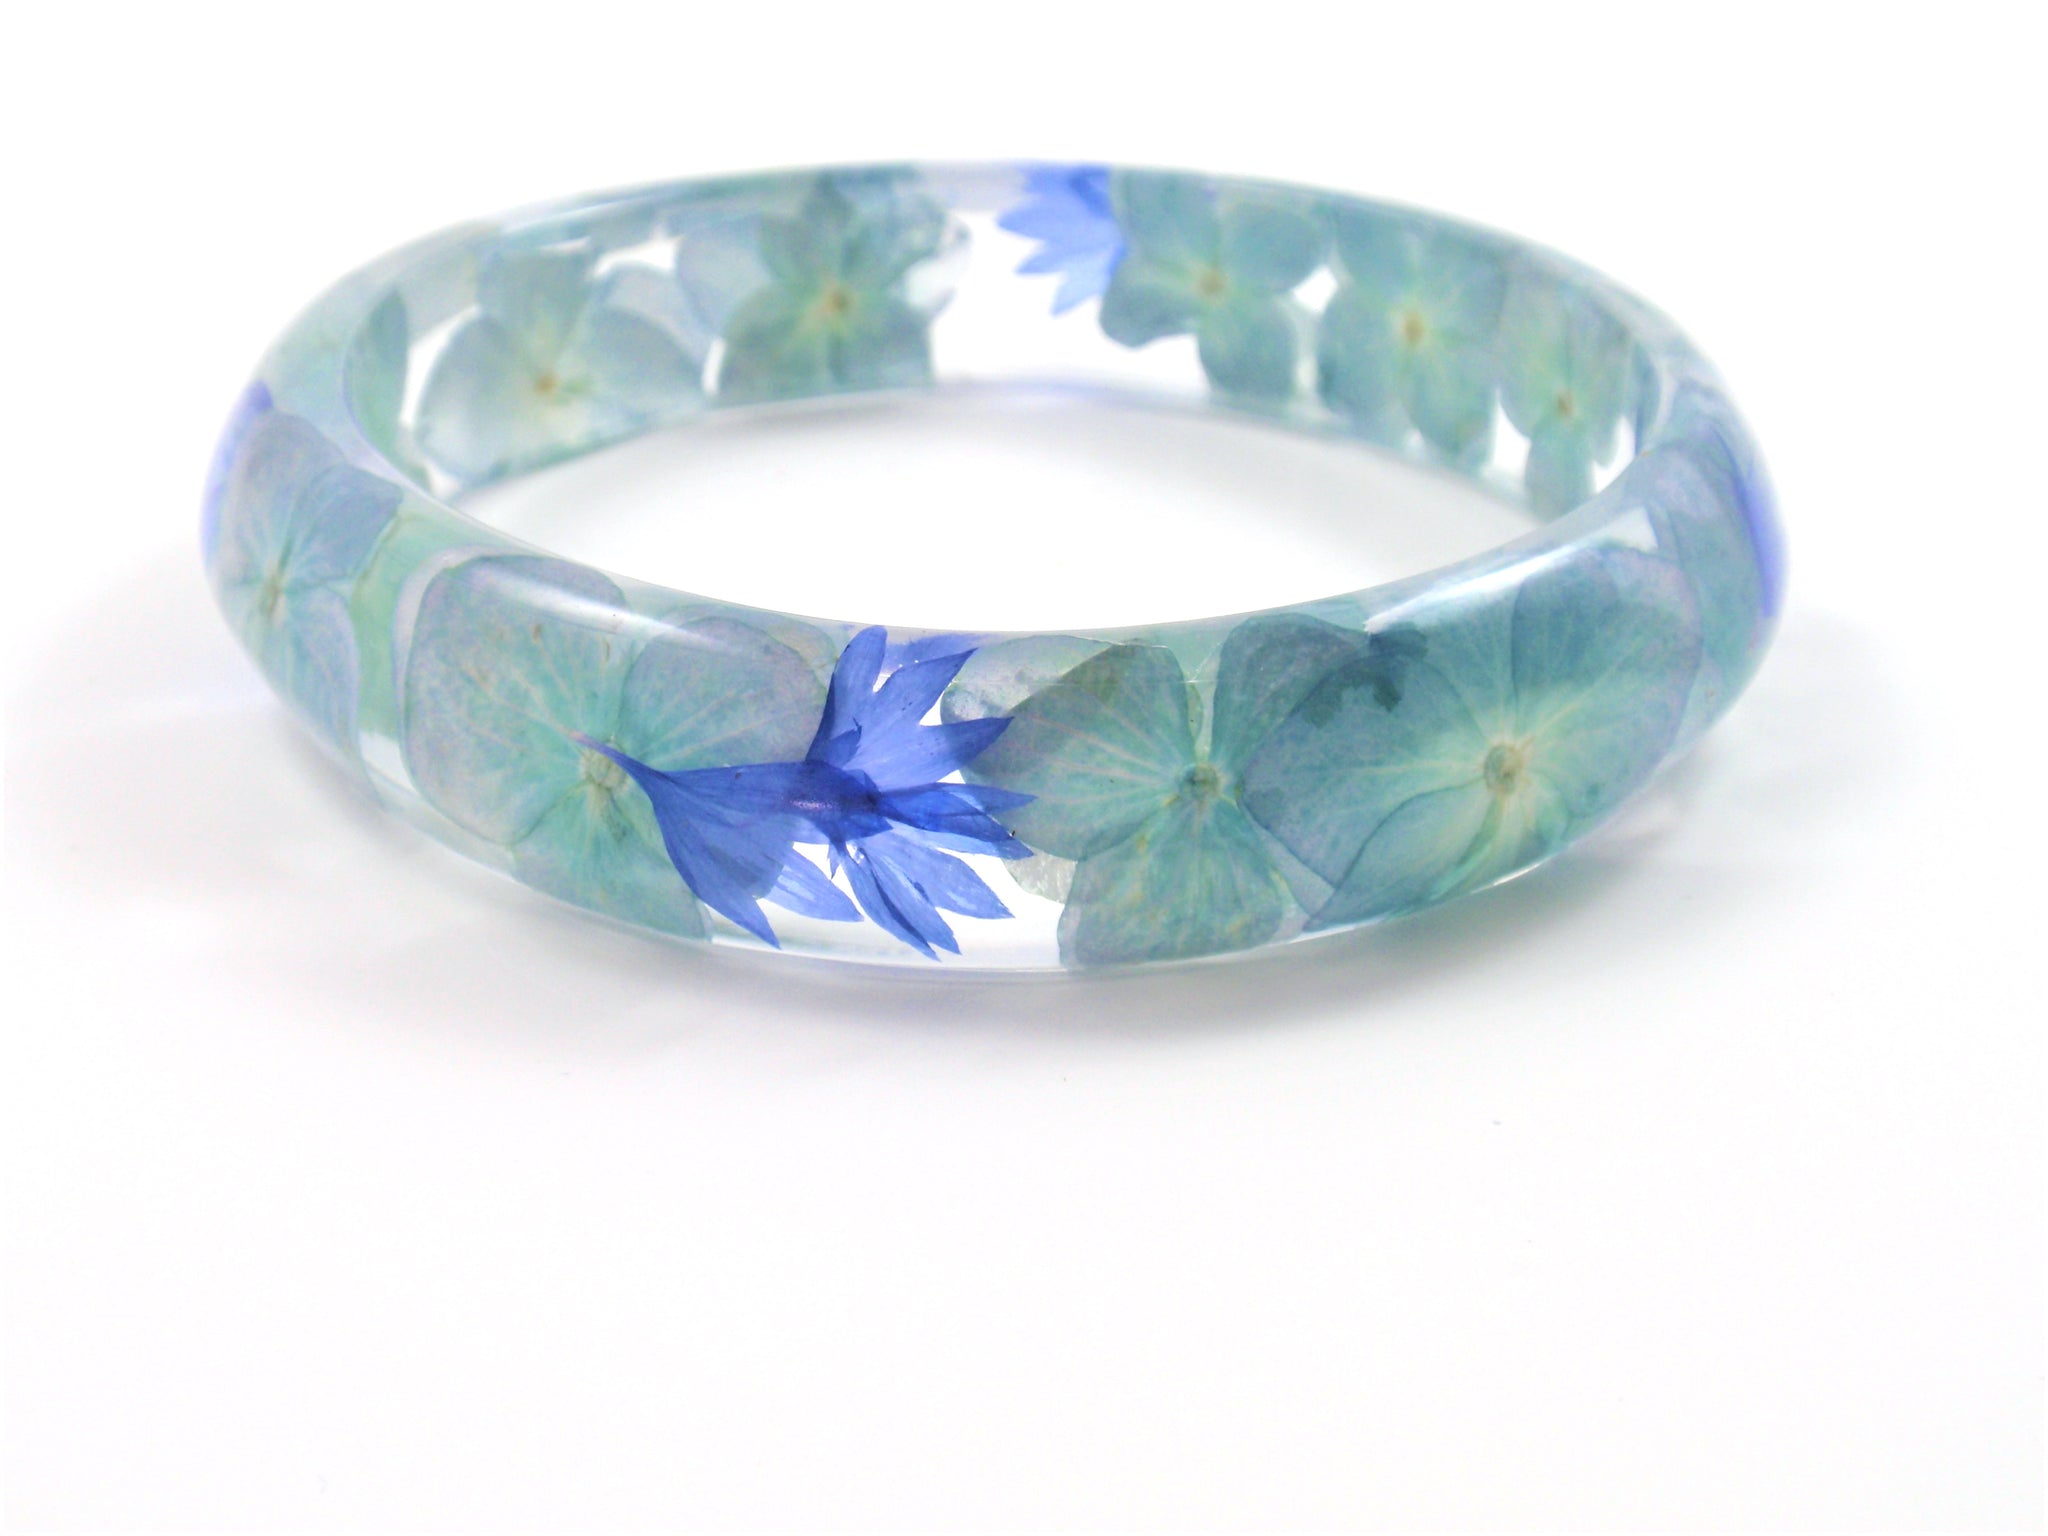 bangle bracelet by Smile with Flower